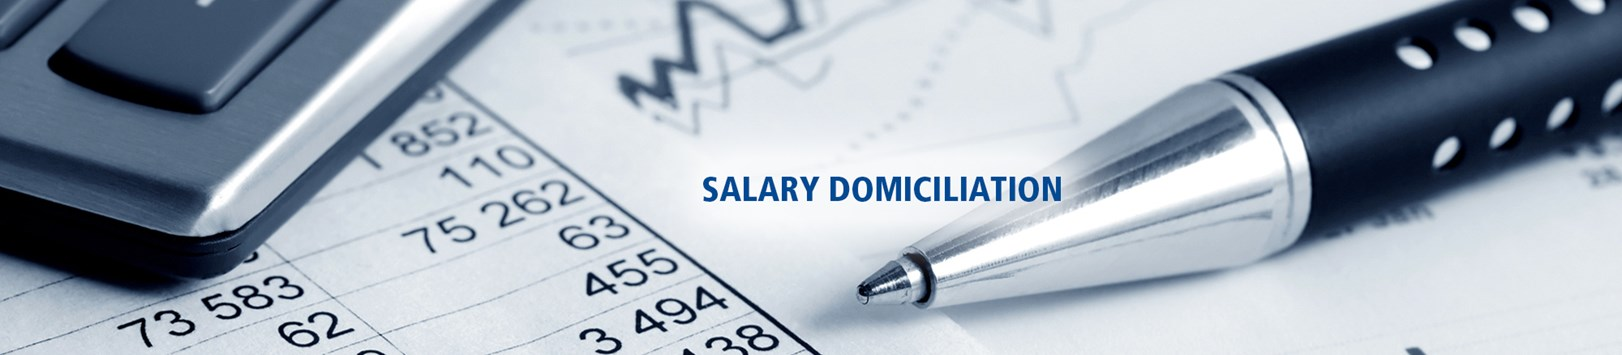 Salary Domiciliation